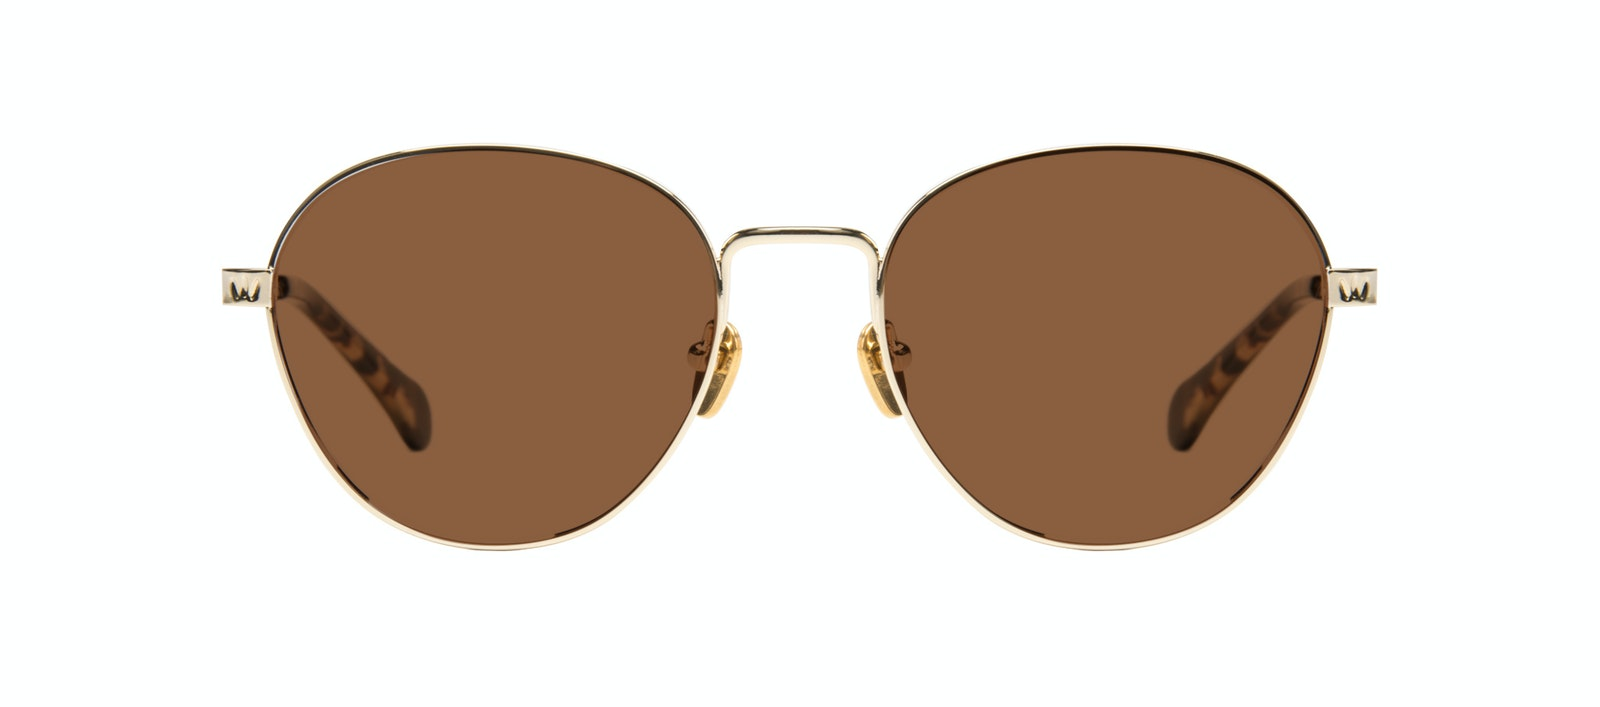 Affordable Fashion Glasses Round Sunglasses Women Brace Gold Front